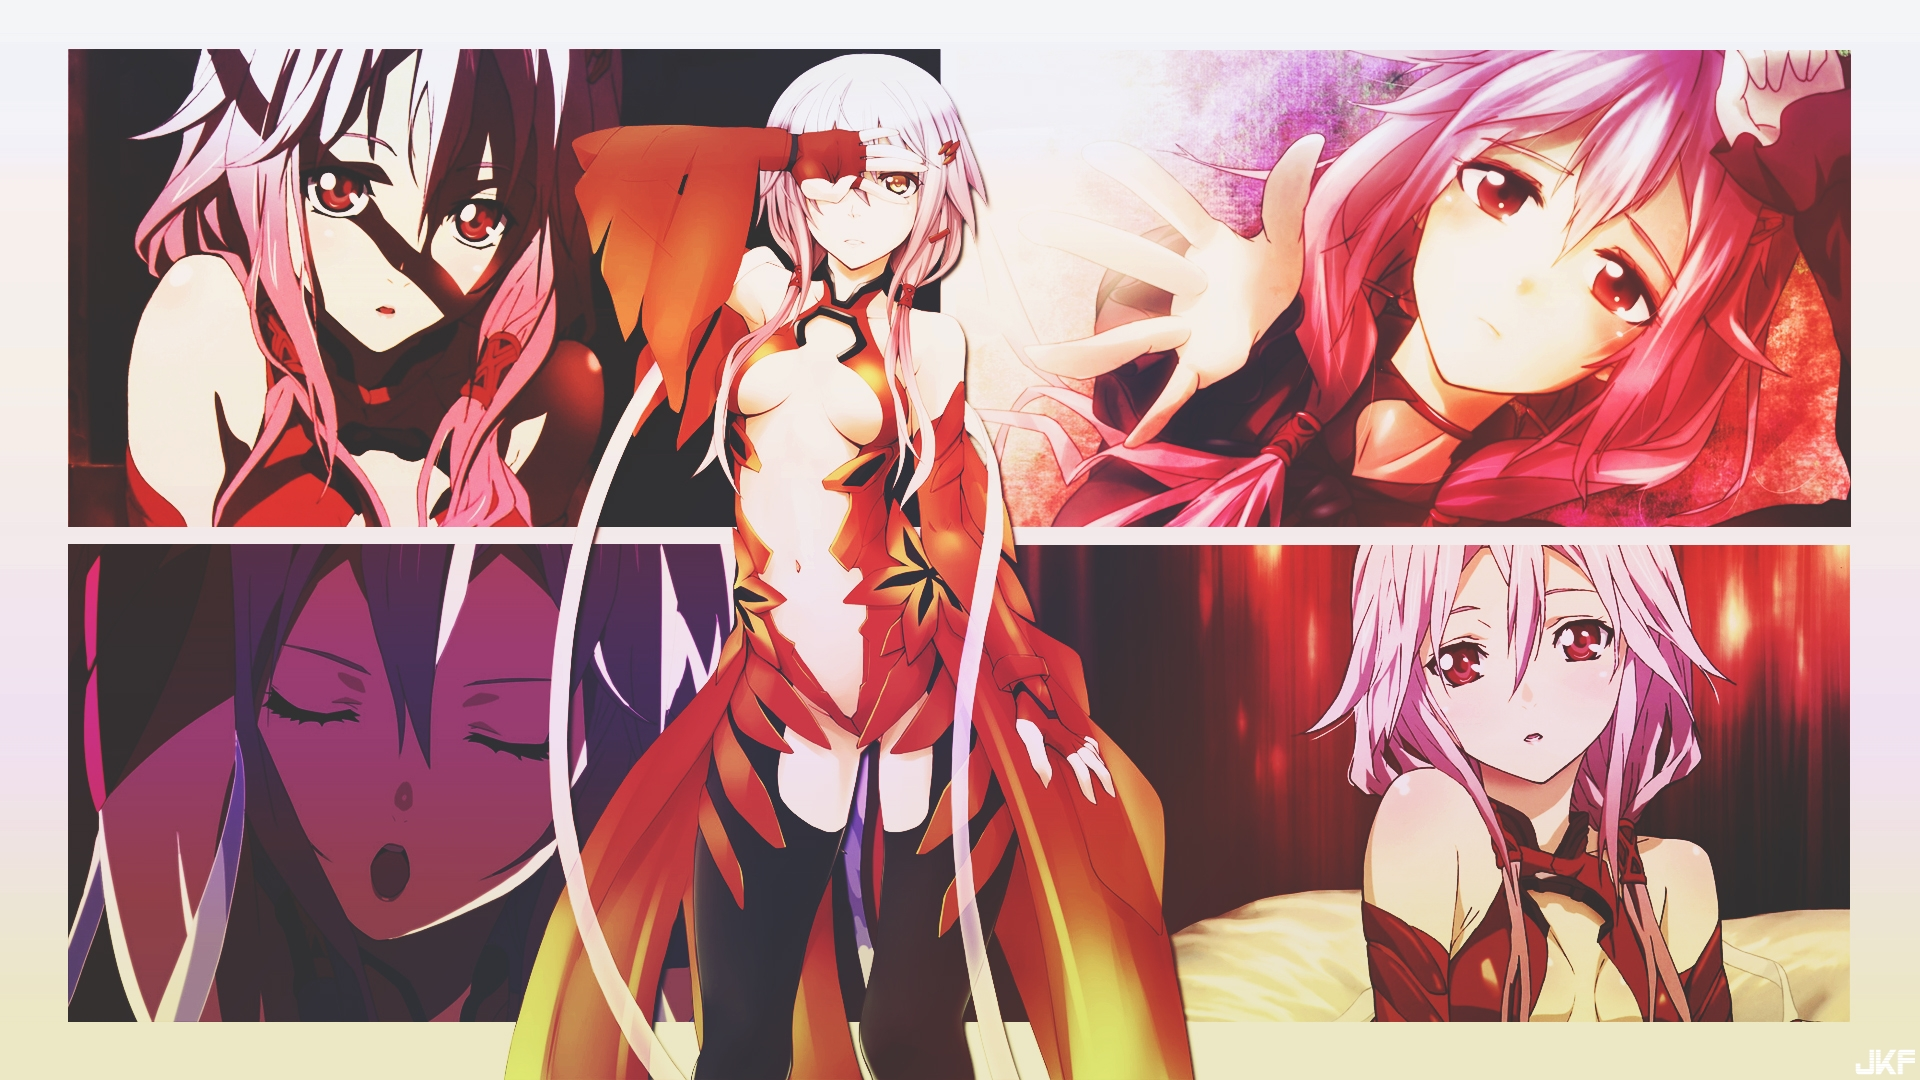 inori_wallpaper_3_by_dinocojv-d8yjsdz.jpg